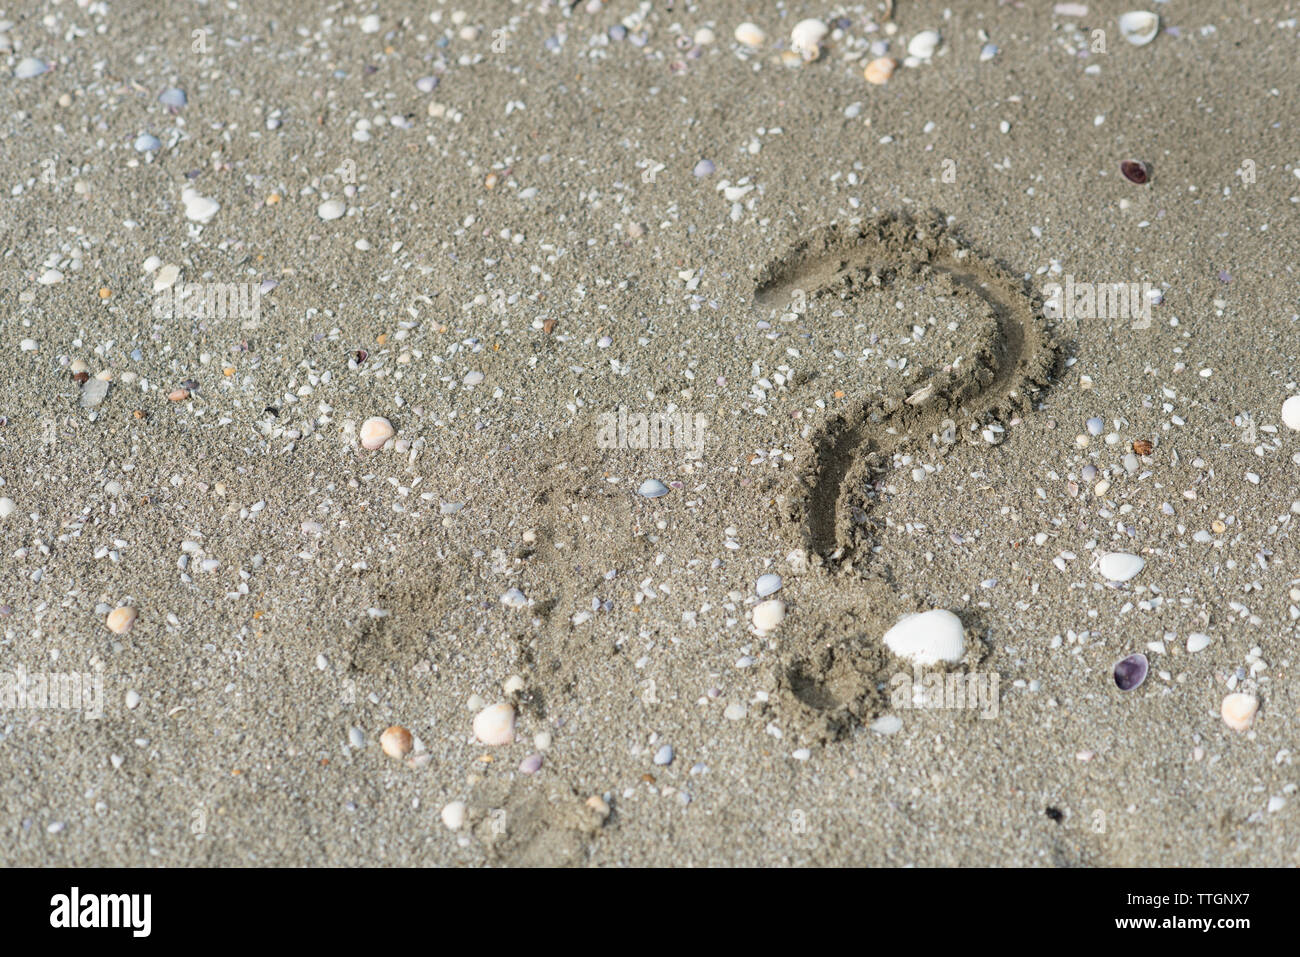 question mark wriiten on a sandy beach. Concept of faq, travel tips and travel destinations - Stock Image